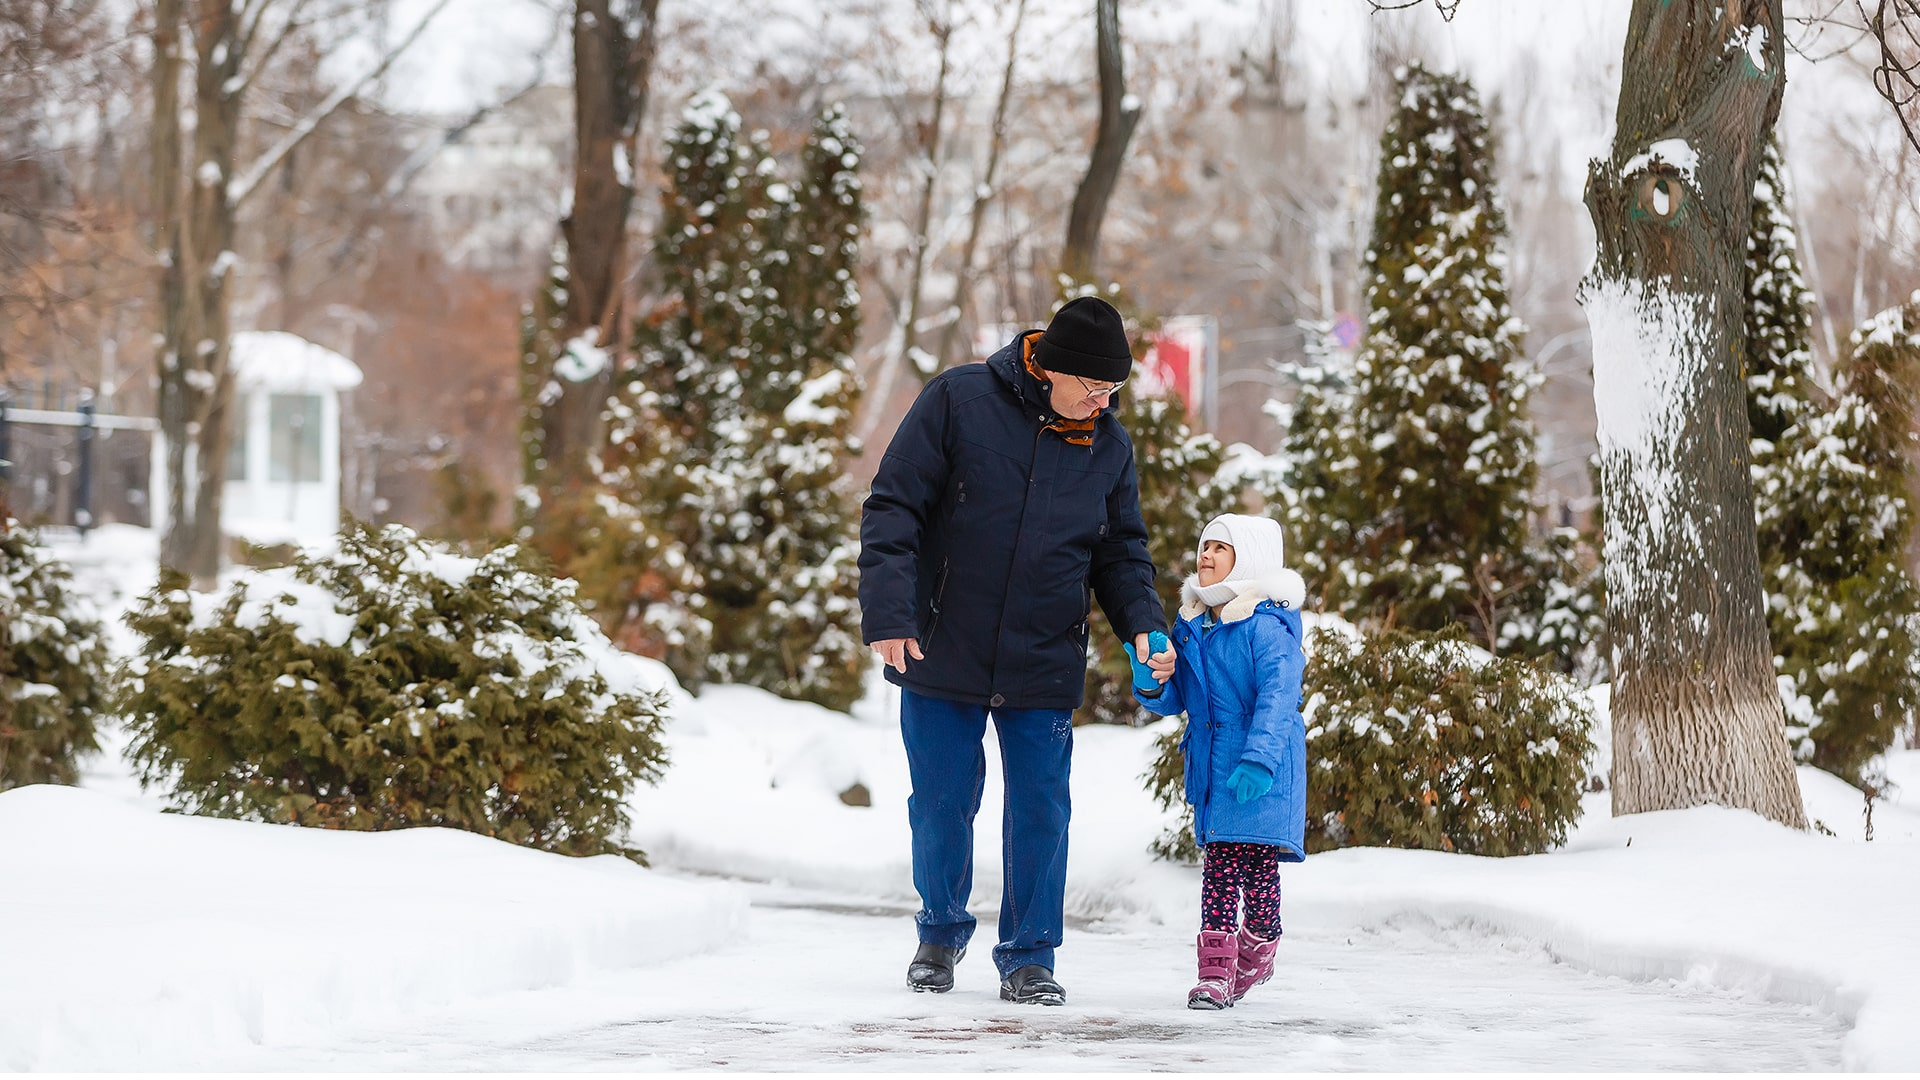 Home-Page-Older-Adult-walking-down-snowy-street-with-grandchild